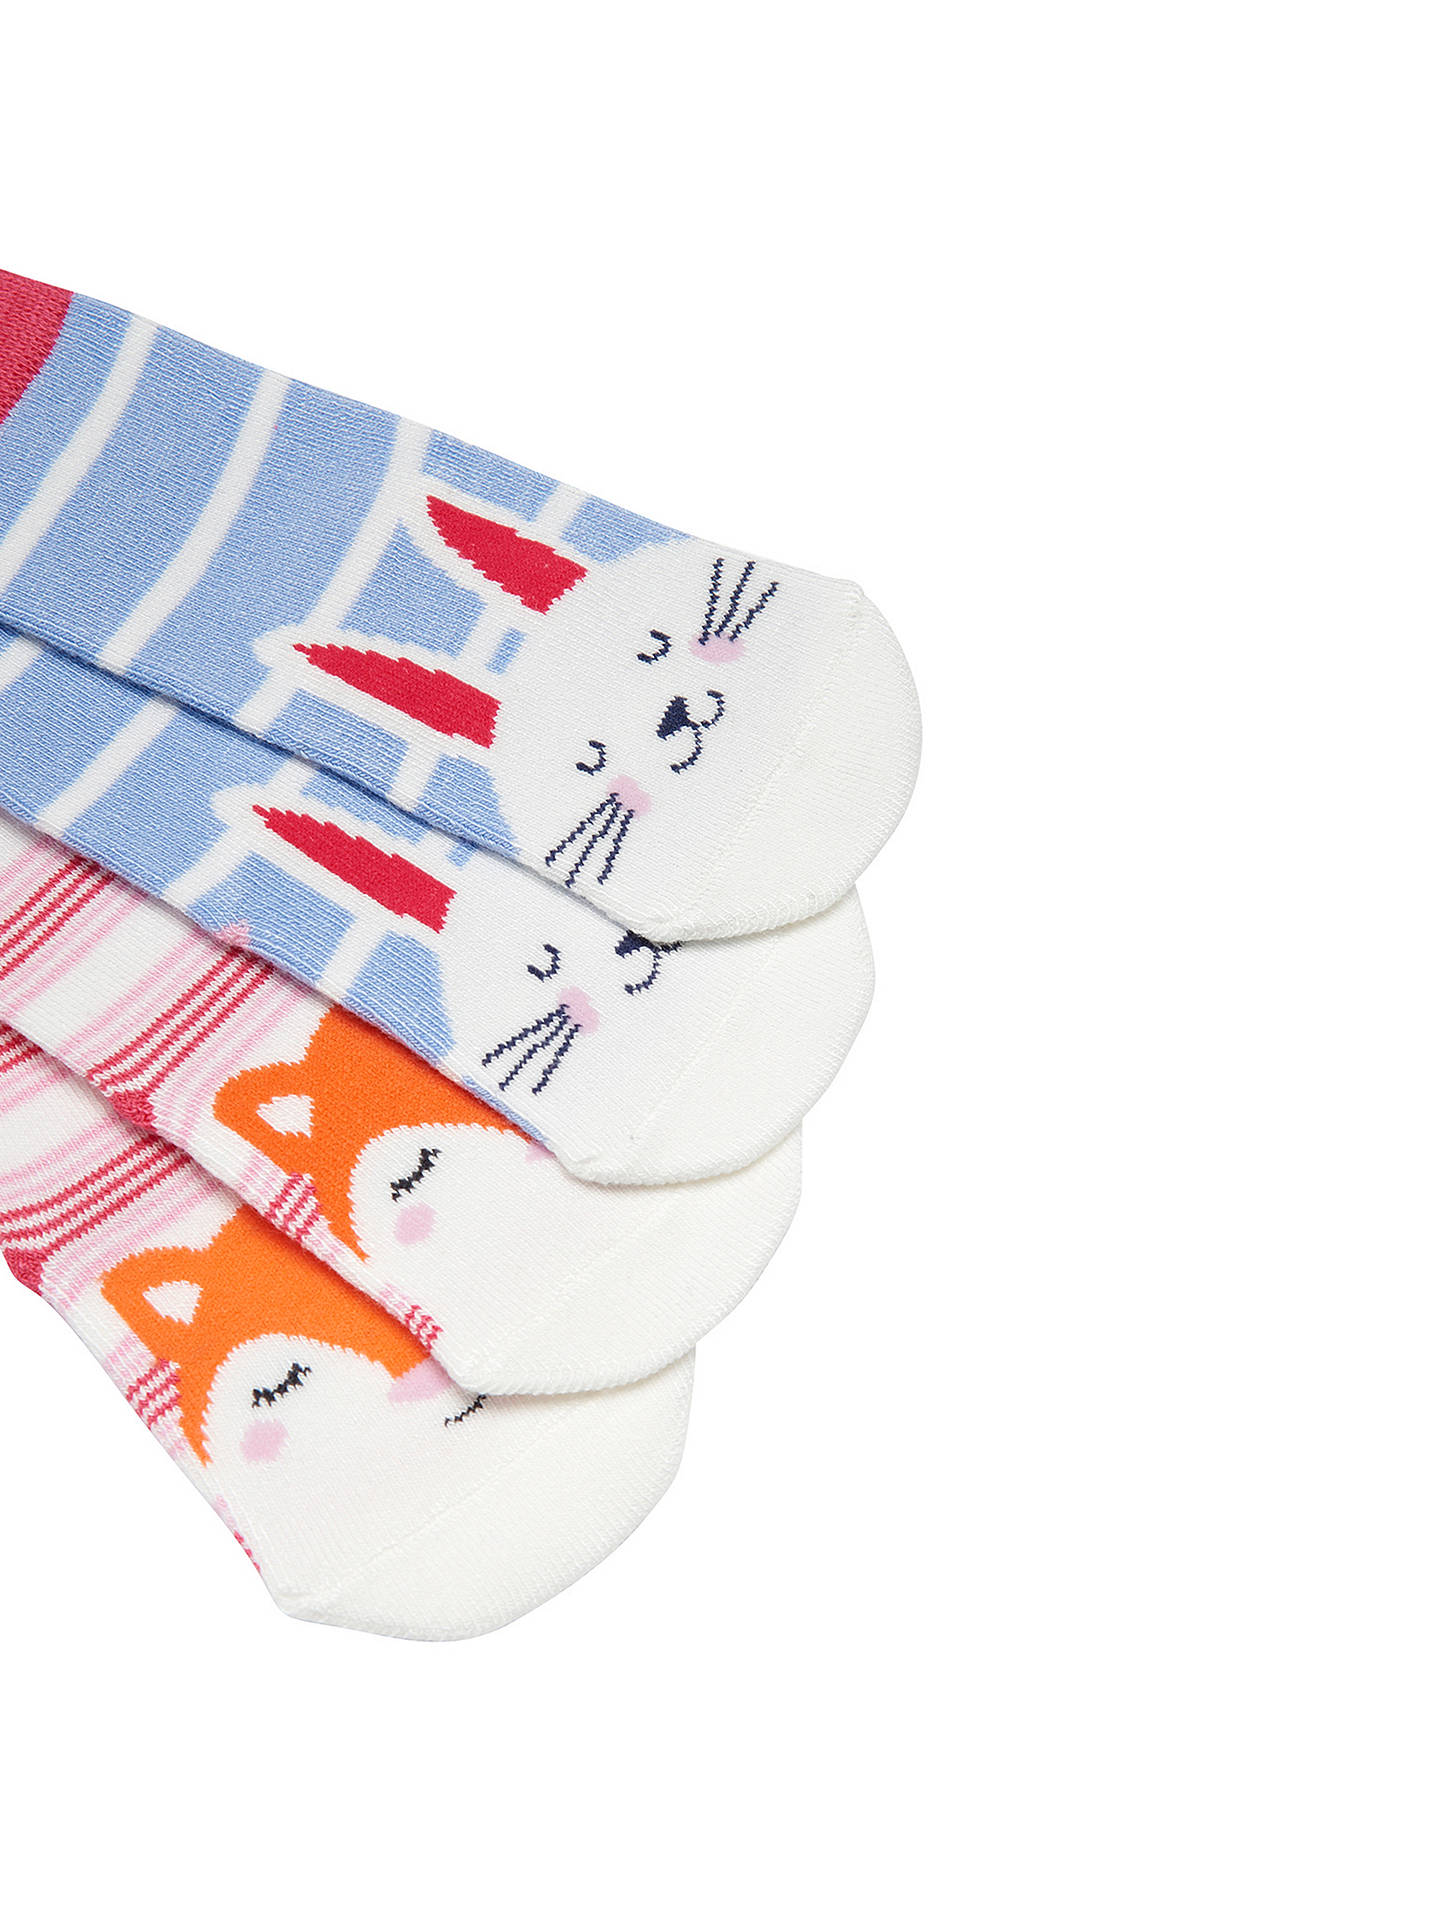 BuyBaby Joule Neat Feet Fox and Bunny Socks, Pack of 2, Multi, 0-6 months Online at johnlewis.com